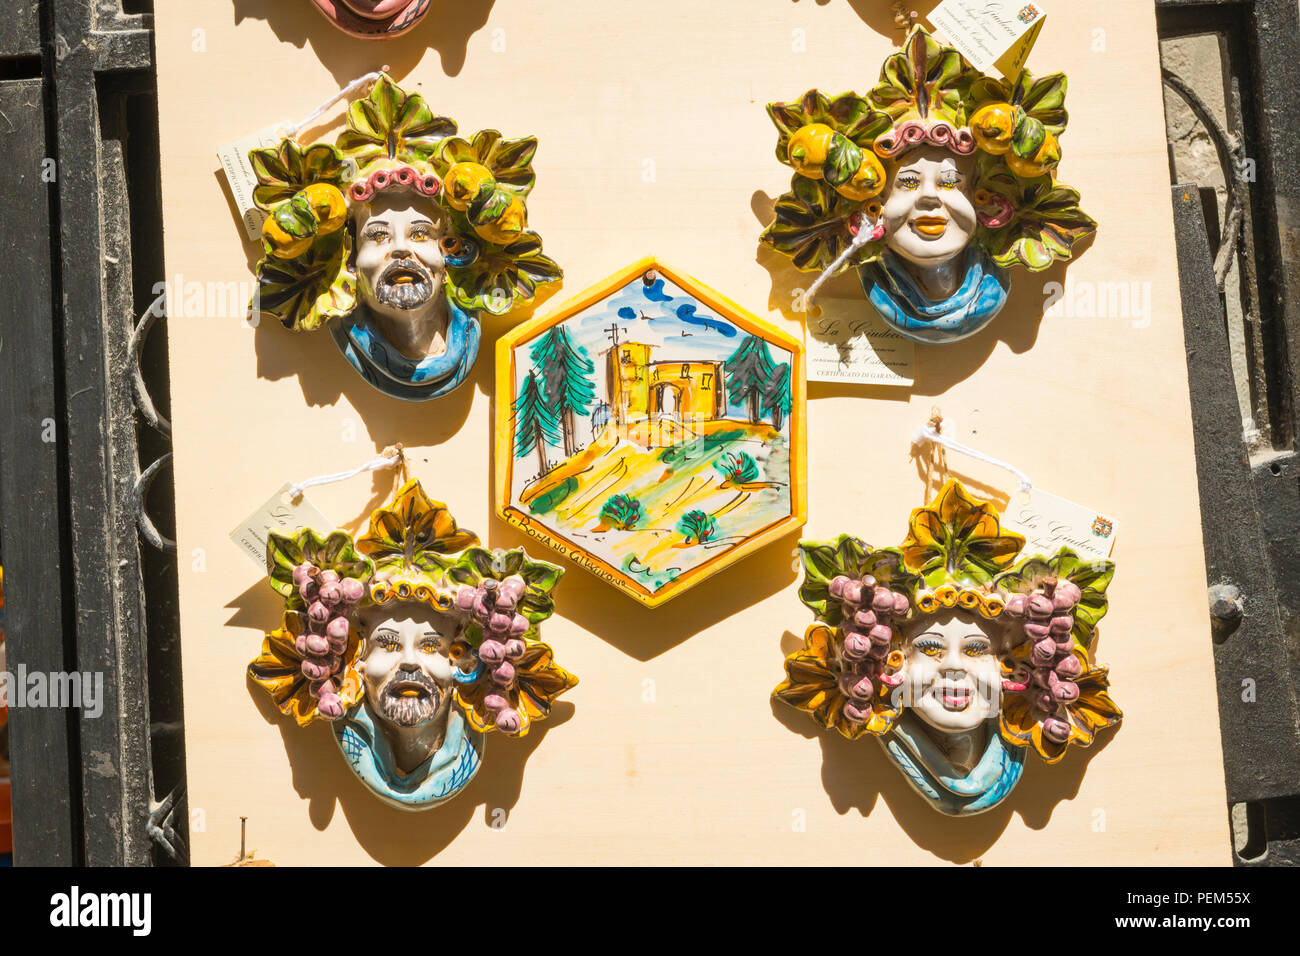 Italy Sicily Syracuse Siracusa Ortygia souvenir shop store typical pottery ceramic smiling faces surrounded by fruit painted scene display board - Stock Image